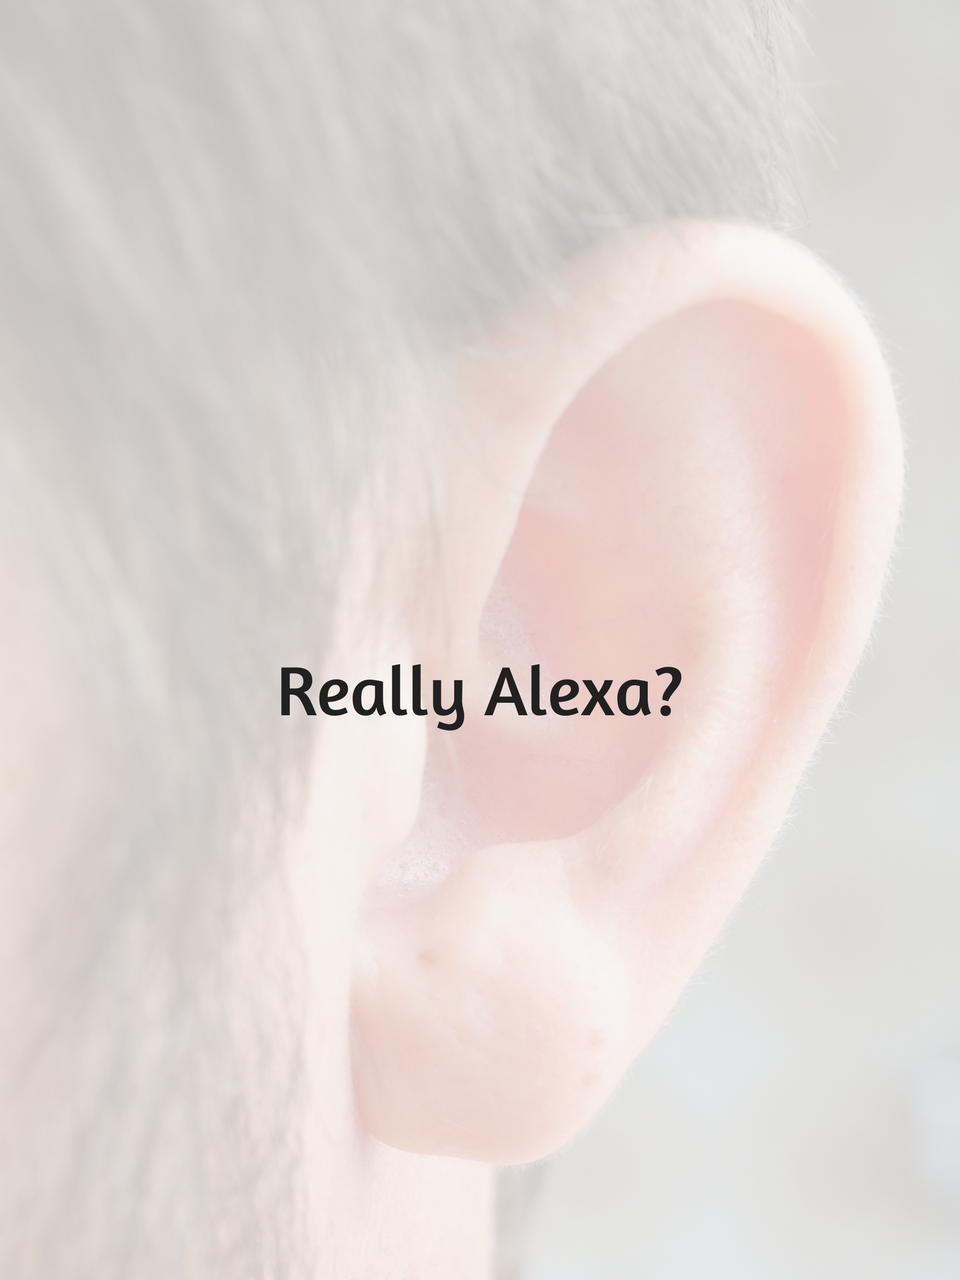 Listening Ear, no privacy.